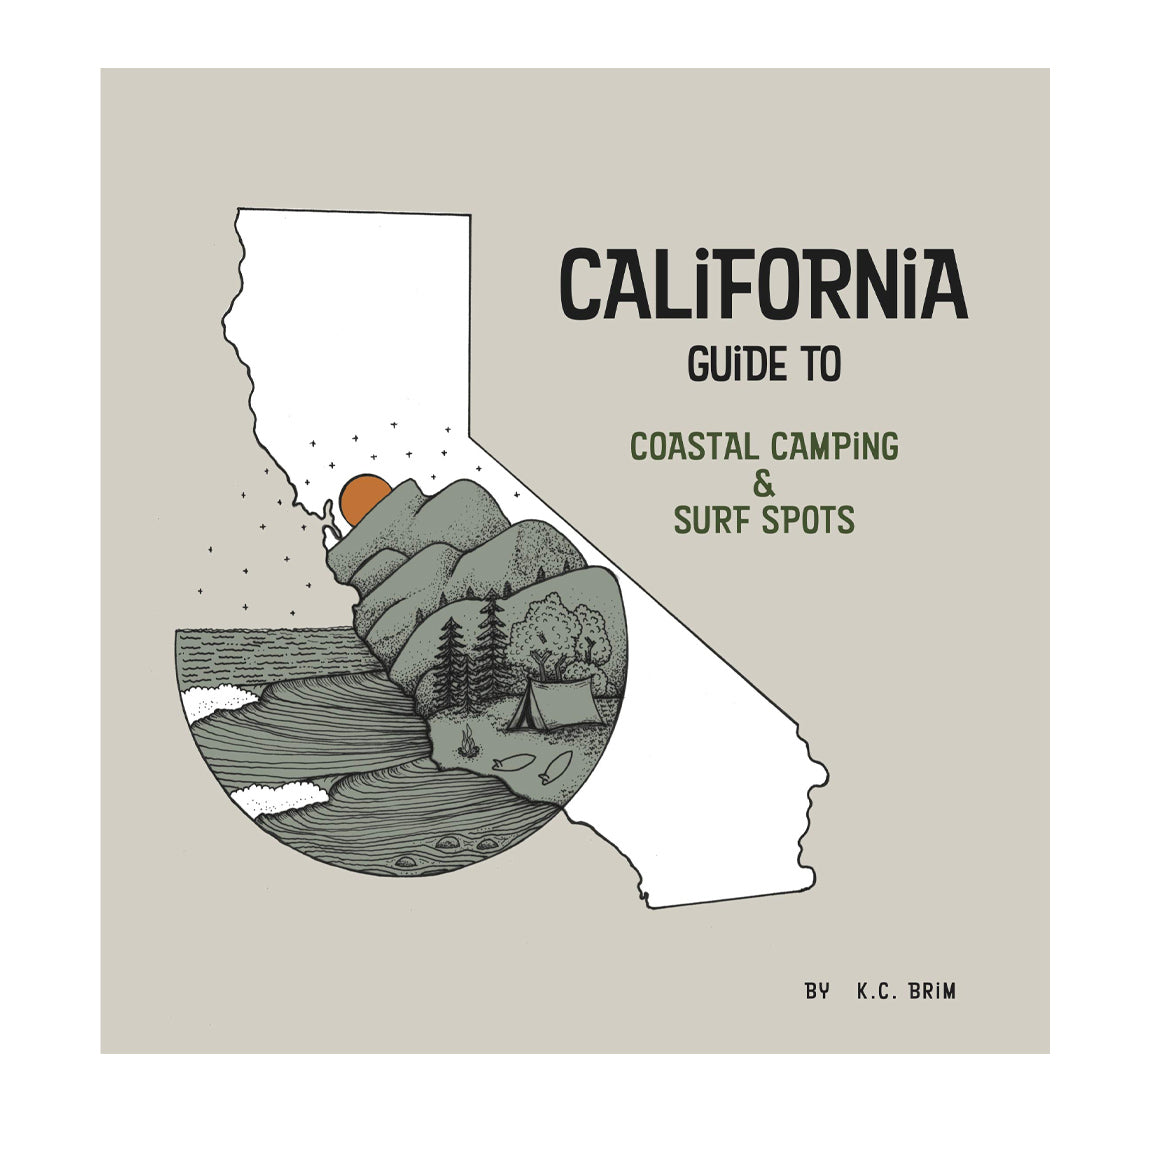 CALIFORNIA GUIDE TO COASTAL CAMPING AND SURF SPOTS